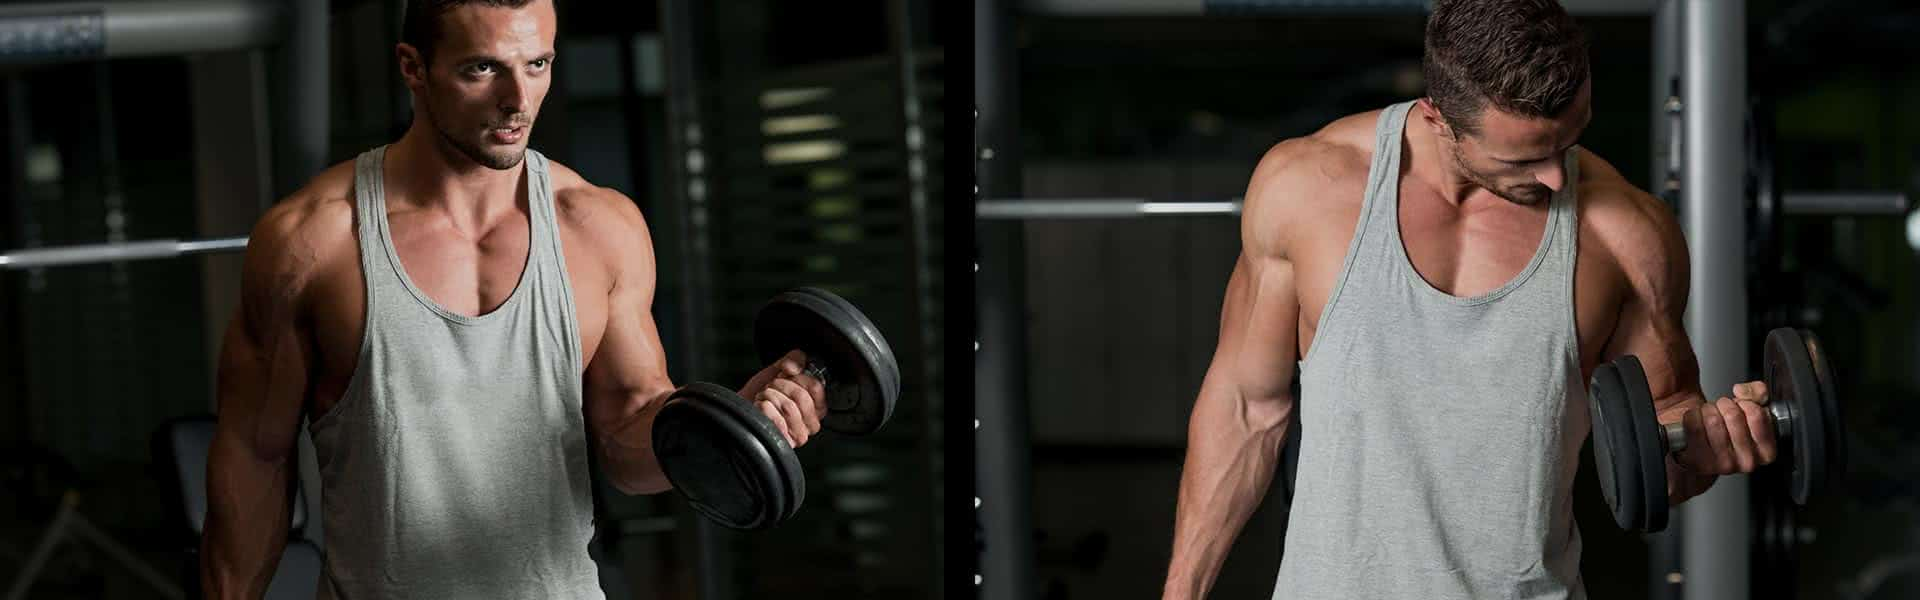 programme-musculation-biceps